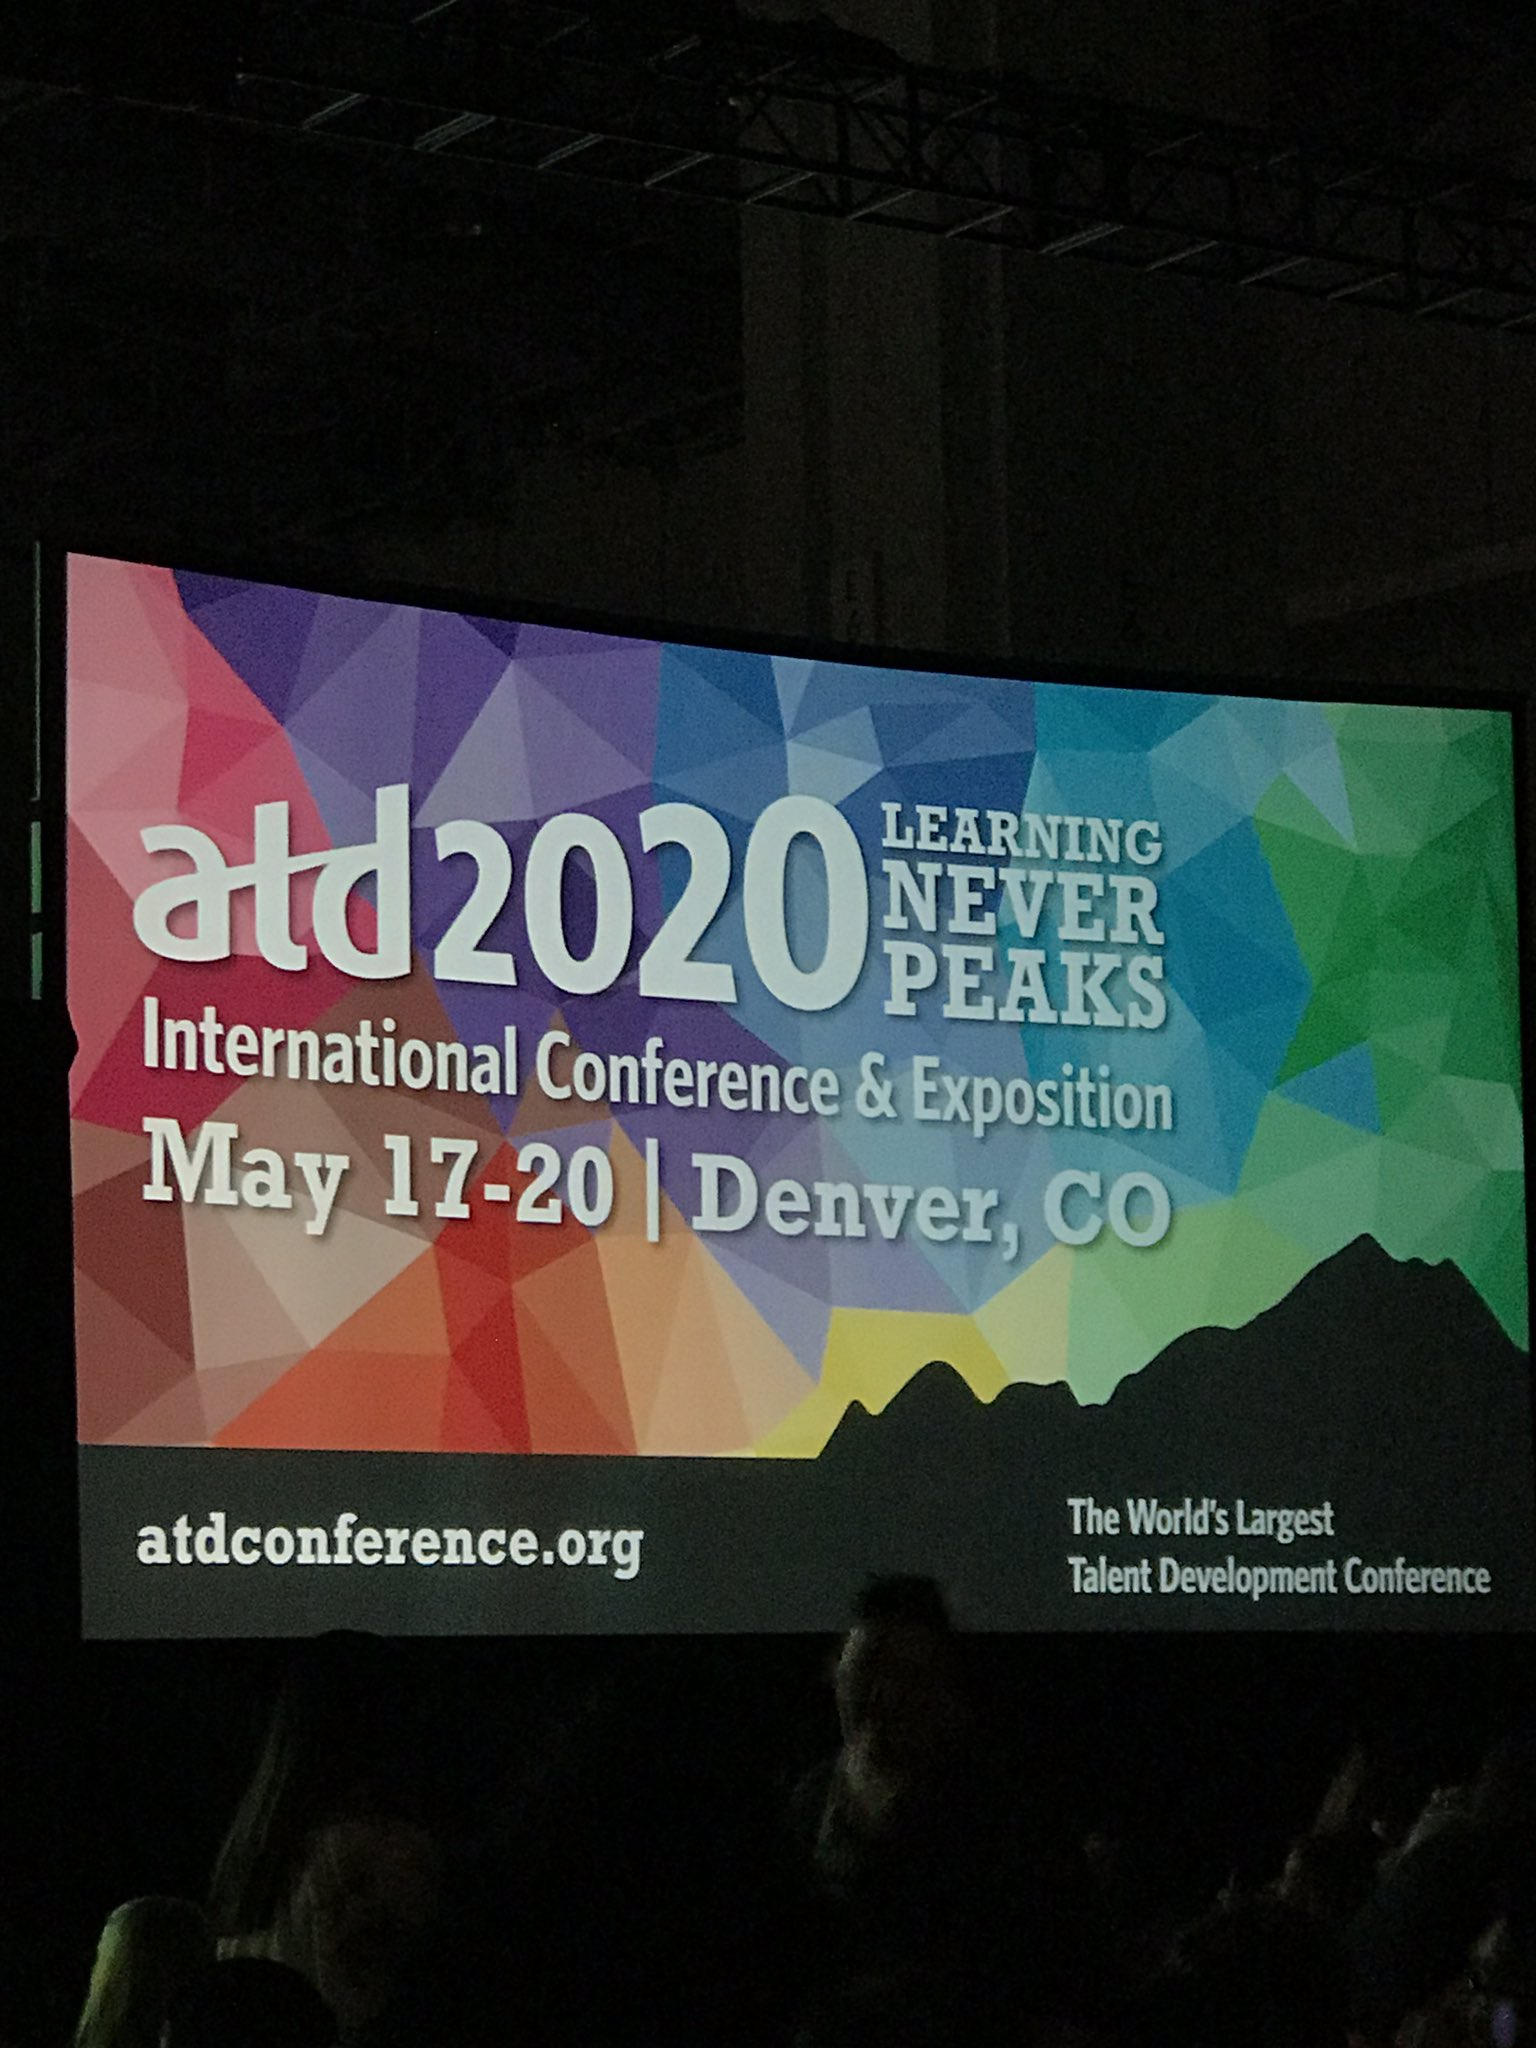 Thank you to all the chapter leaders who attended #ATD2019. We look forward to seeing you in Denver for #ATD2020! #ATDchapters https://t.co/blHo1UOtYS